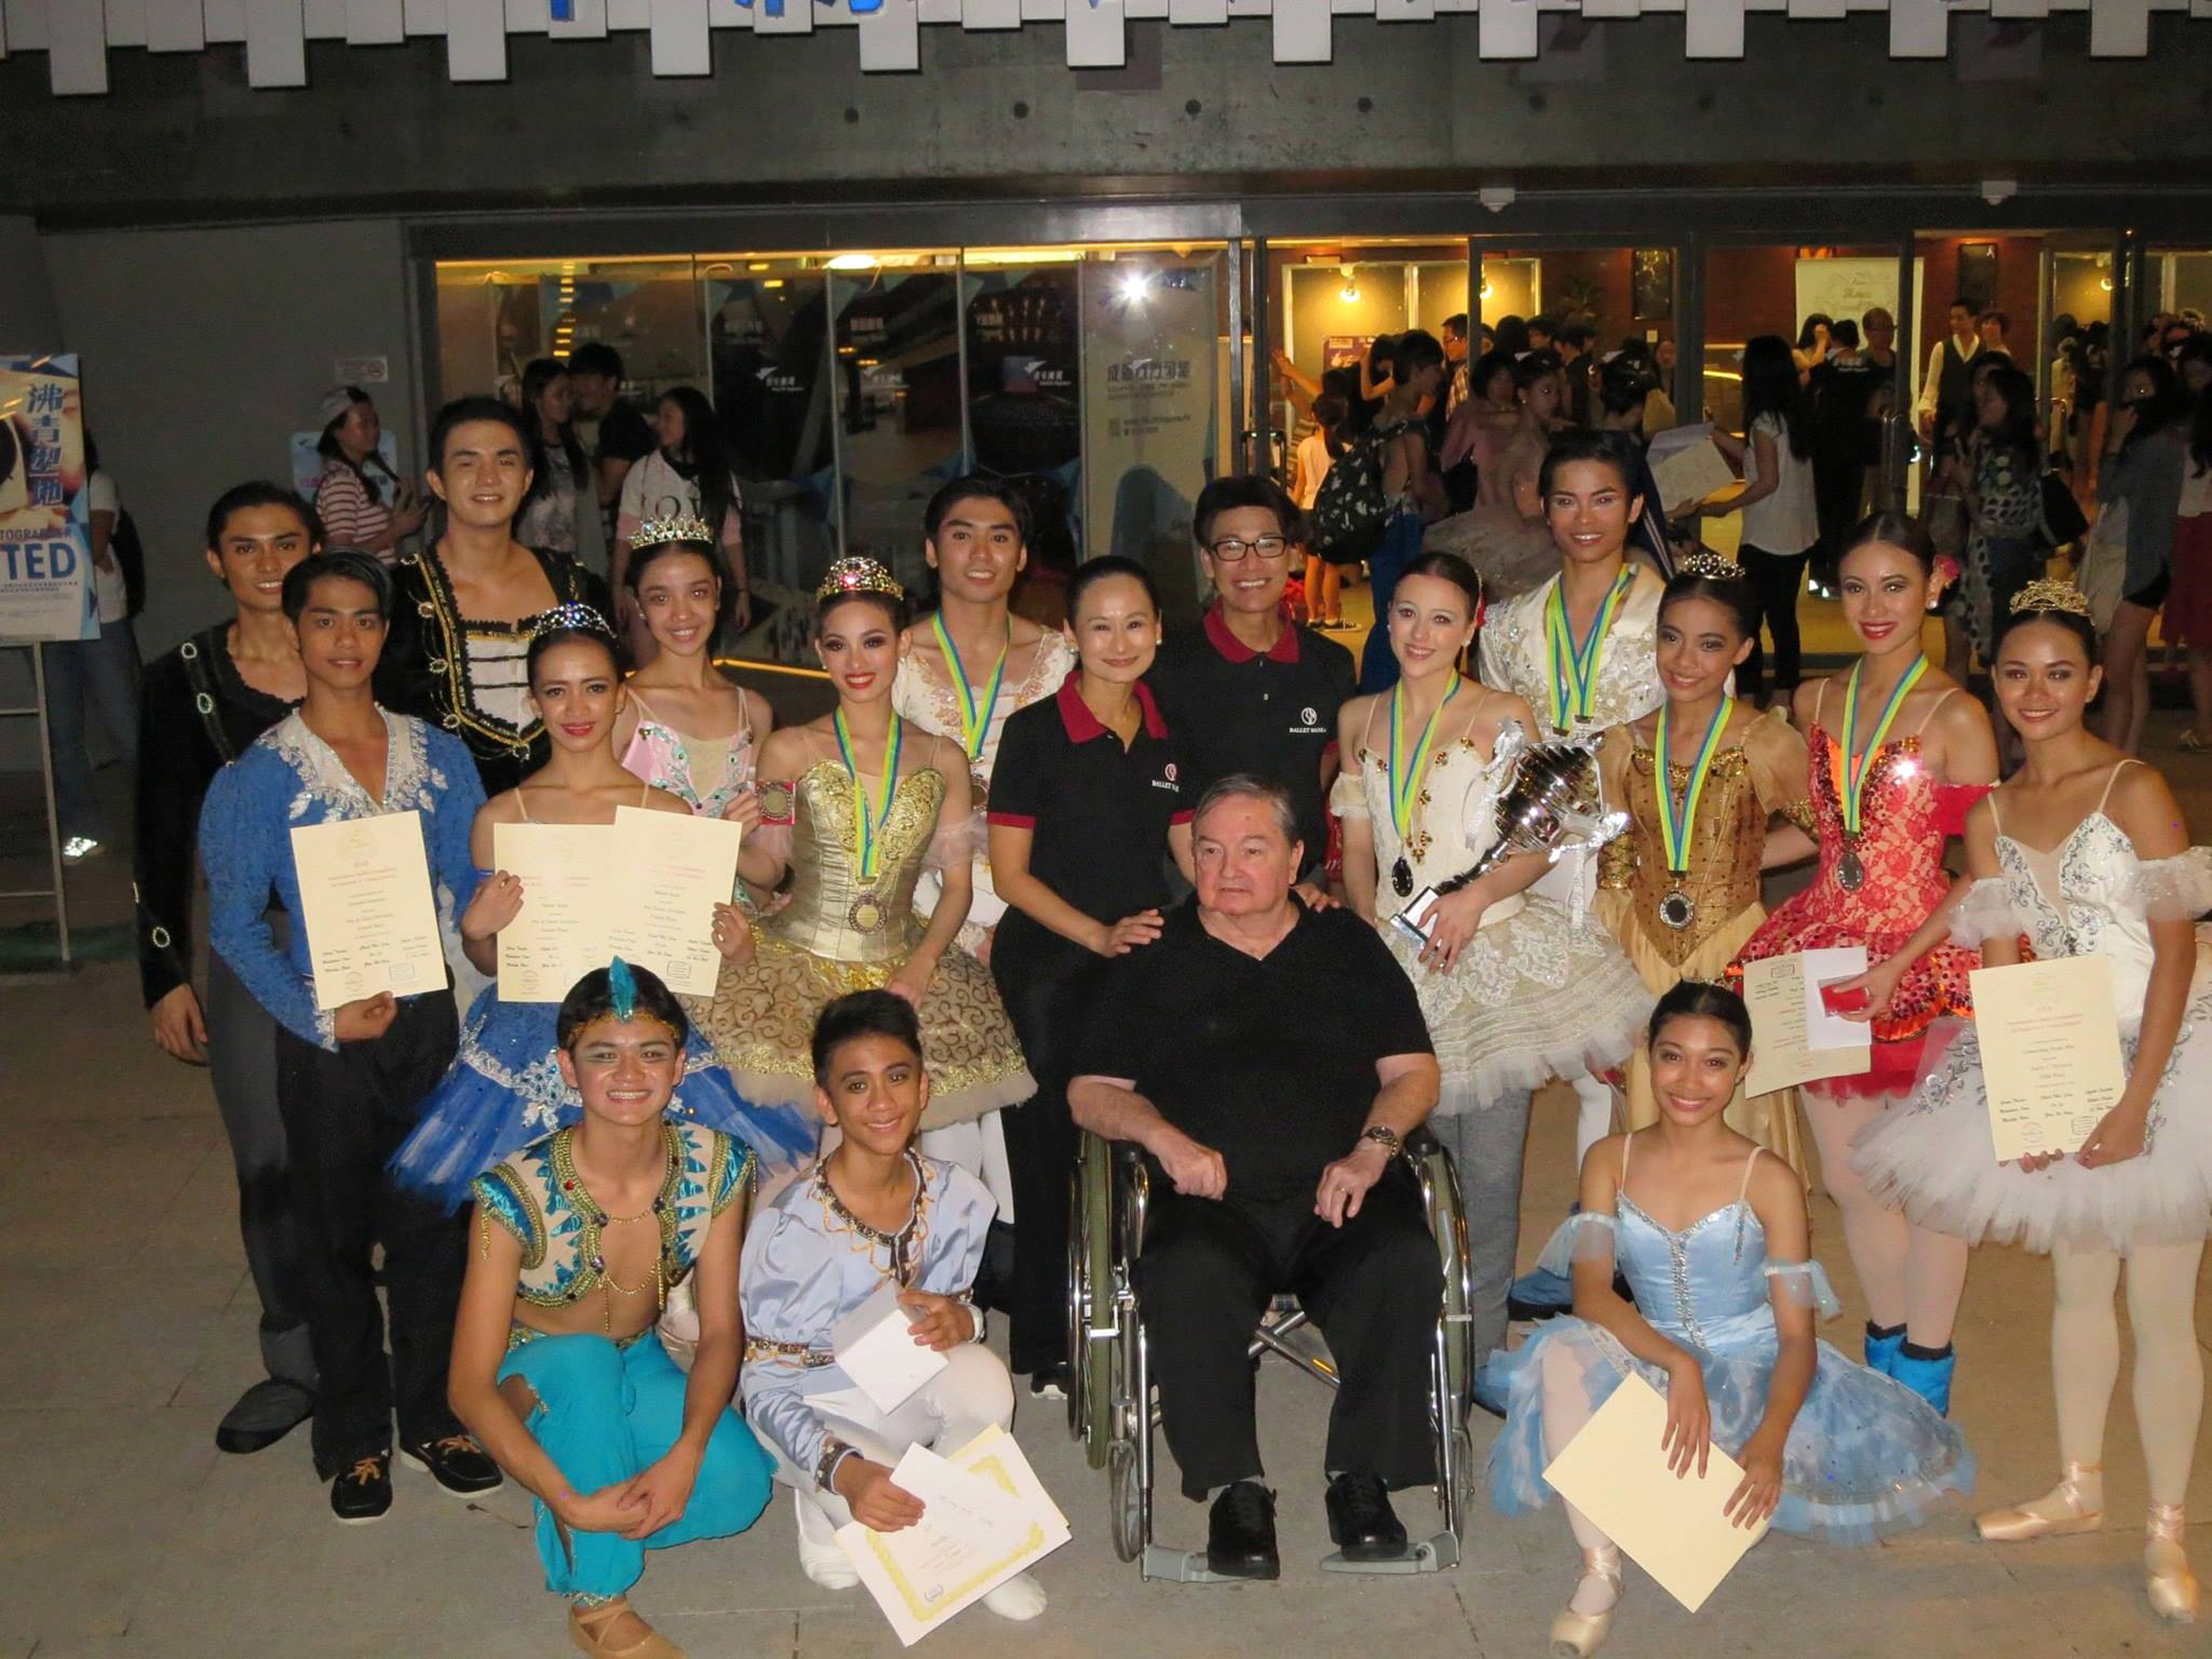 Fred is on hand to congratulate the BM dancers who won medals and citations at the Asian Grand Prix in Hong Kong in 2015. Standing to his left is principal artist Katherine Barkman who bagged the competition's top prize.